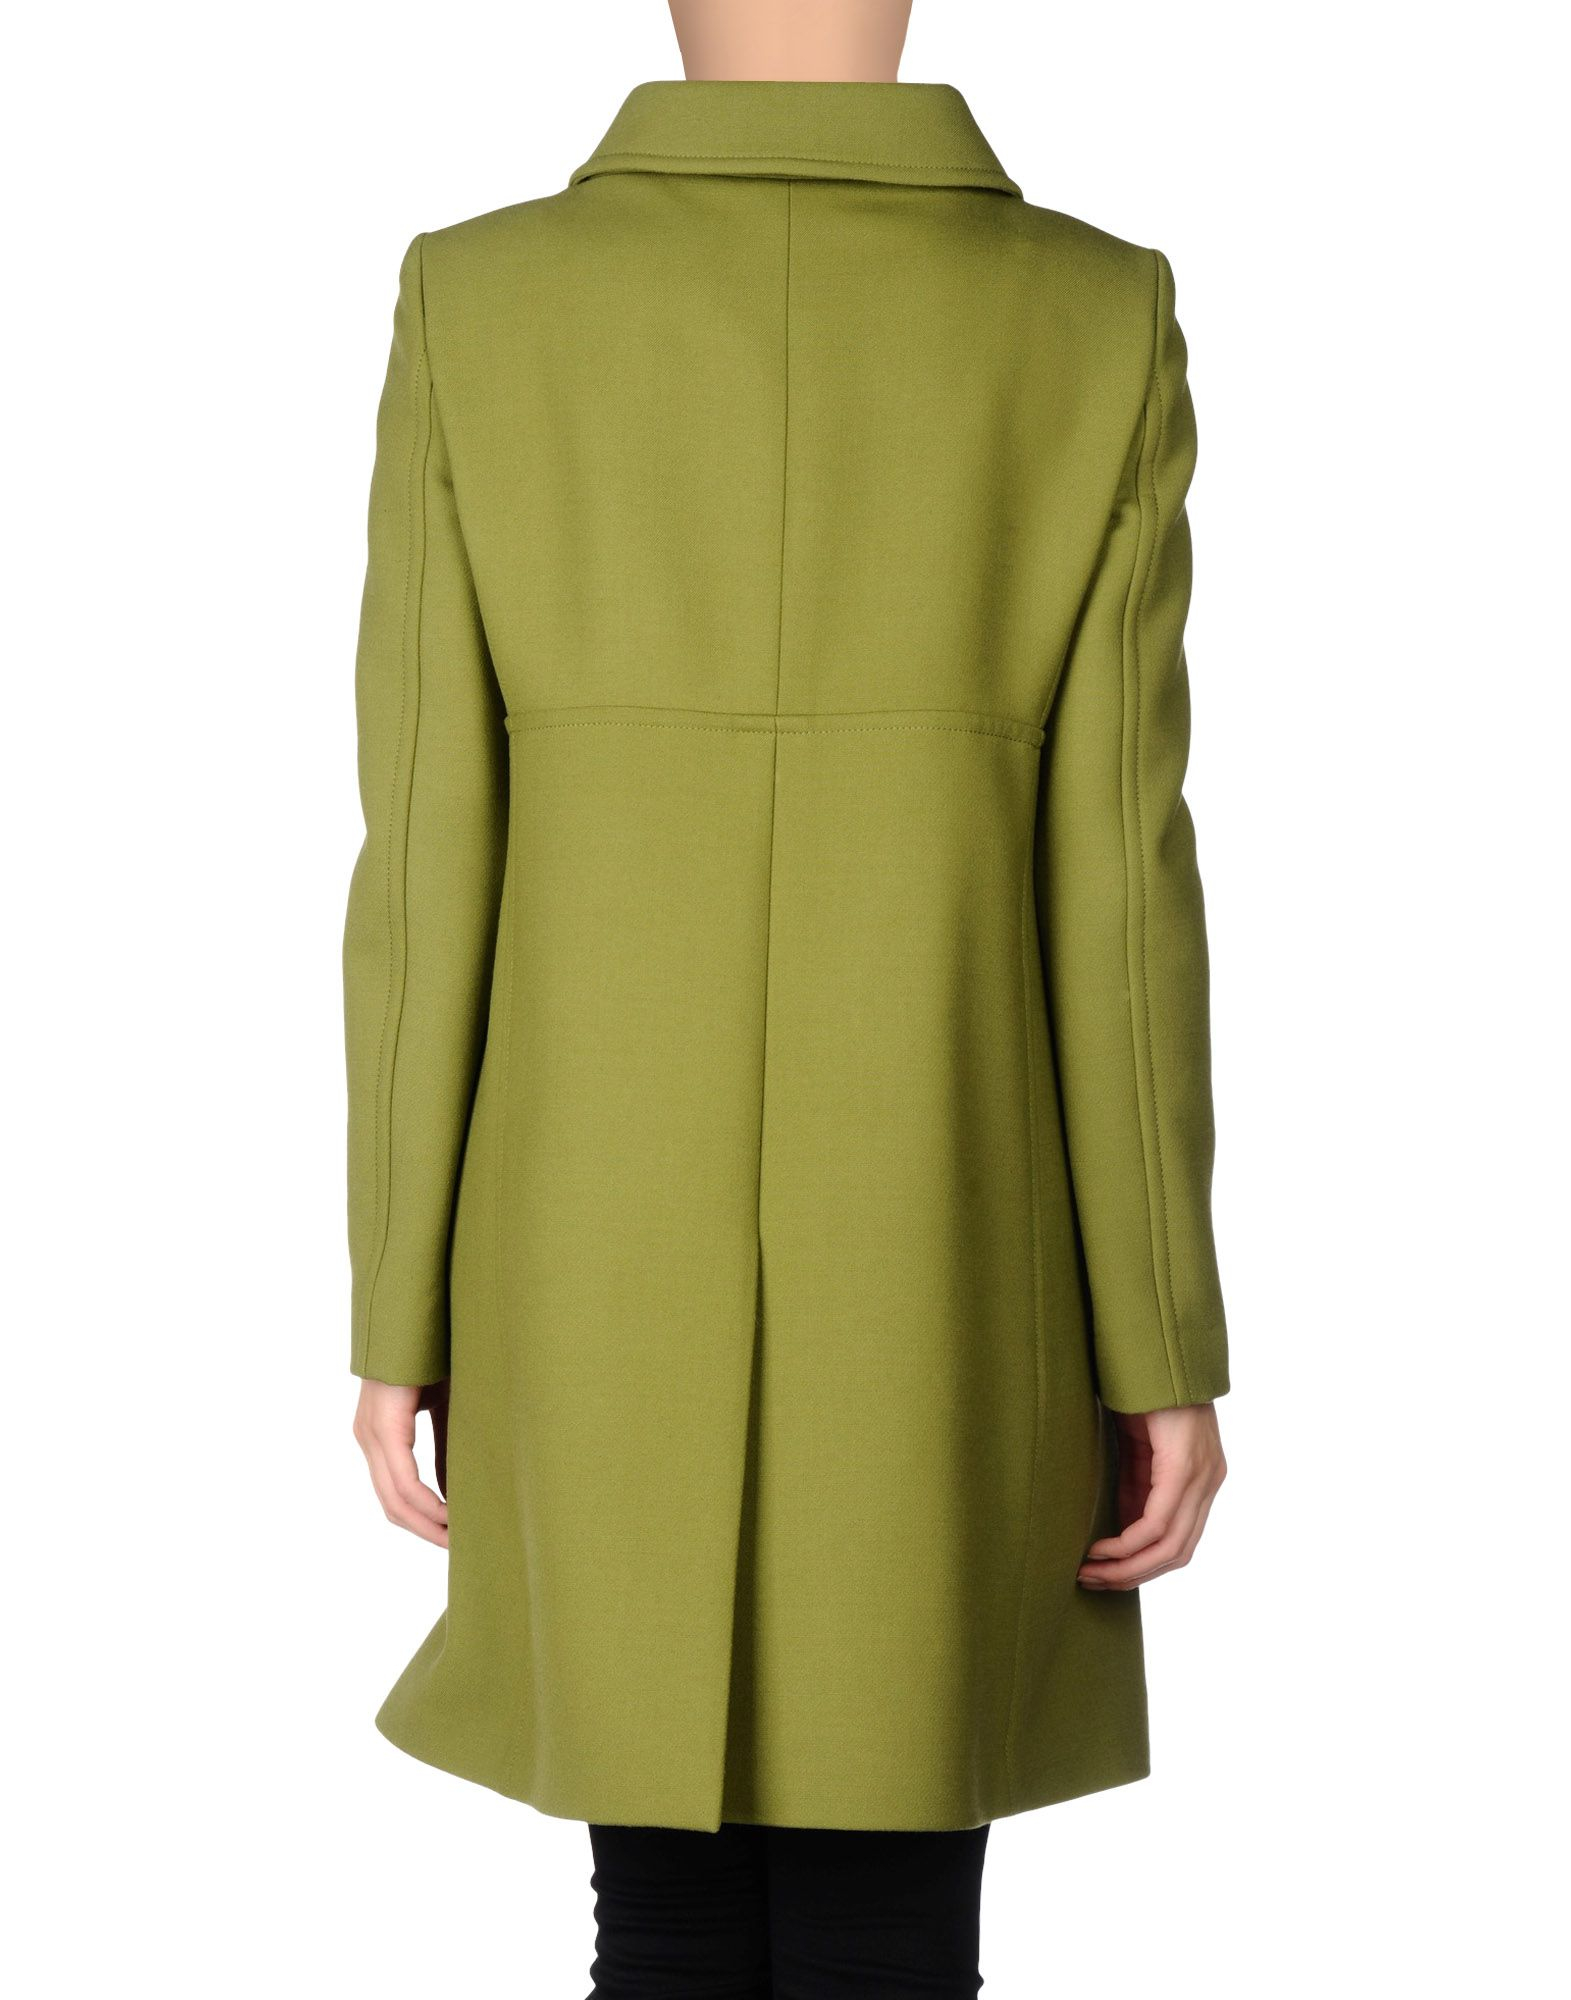 638bbbad687 Lyst - Philosophy di Alberta Ferretti Coat in Green